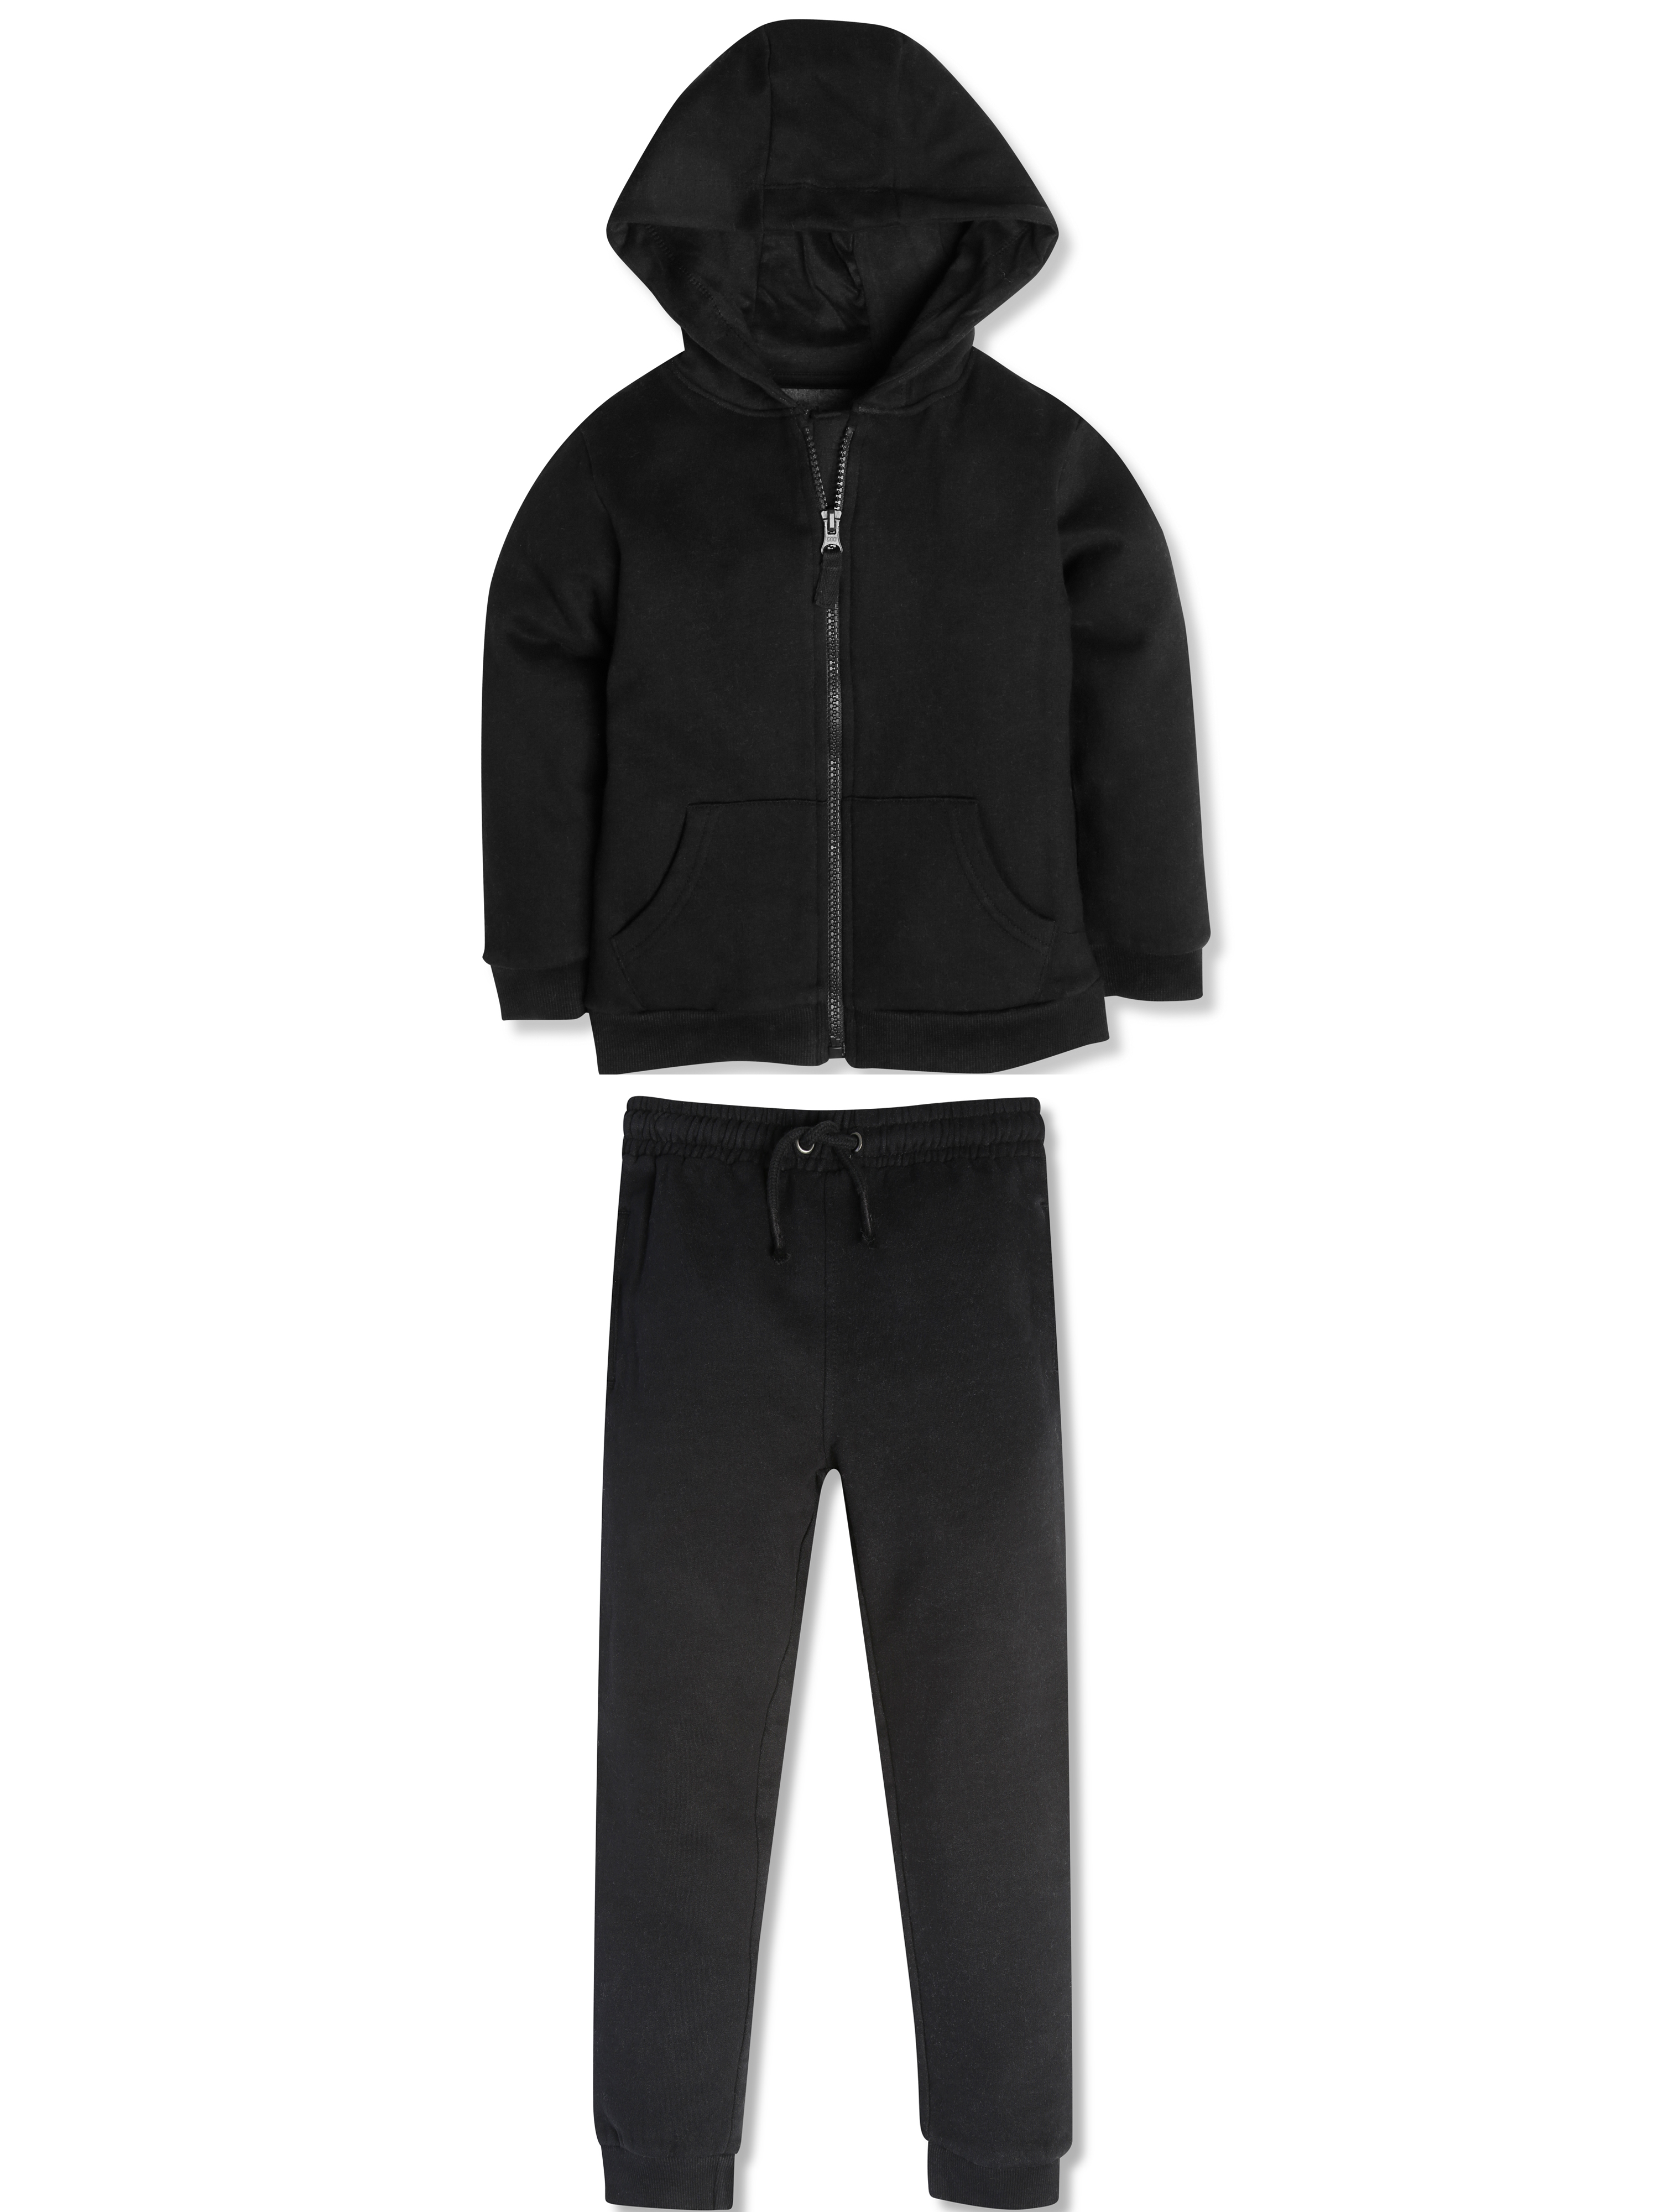 Black Hoodie and Jogger Set (3-12yrs)